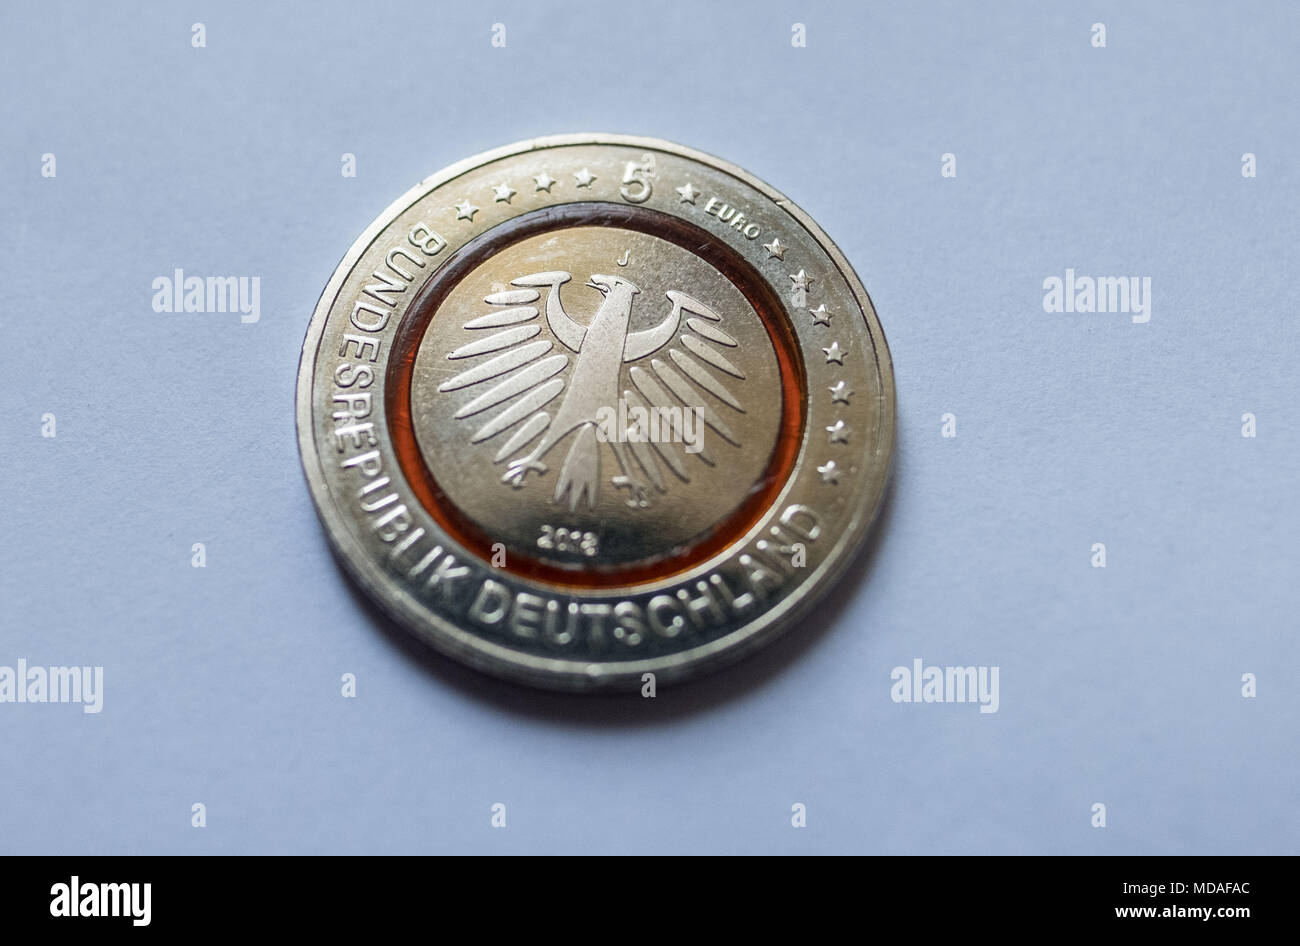 ILLUSTRATION - 19 April 2018, Germany, Hanover: The new 5-euro collectors' coin on a table. Photo: Peter Steffen/dpa - Stock Image